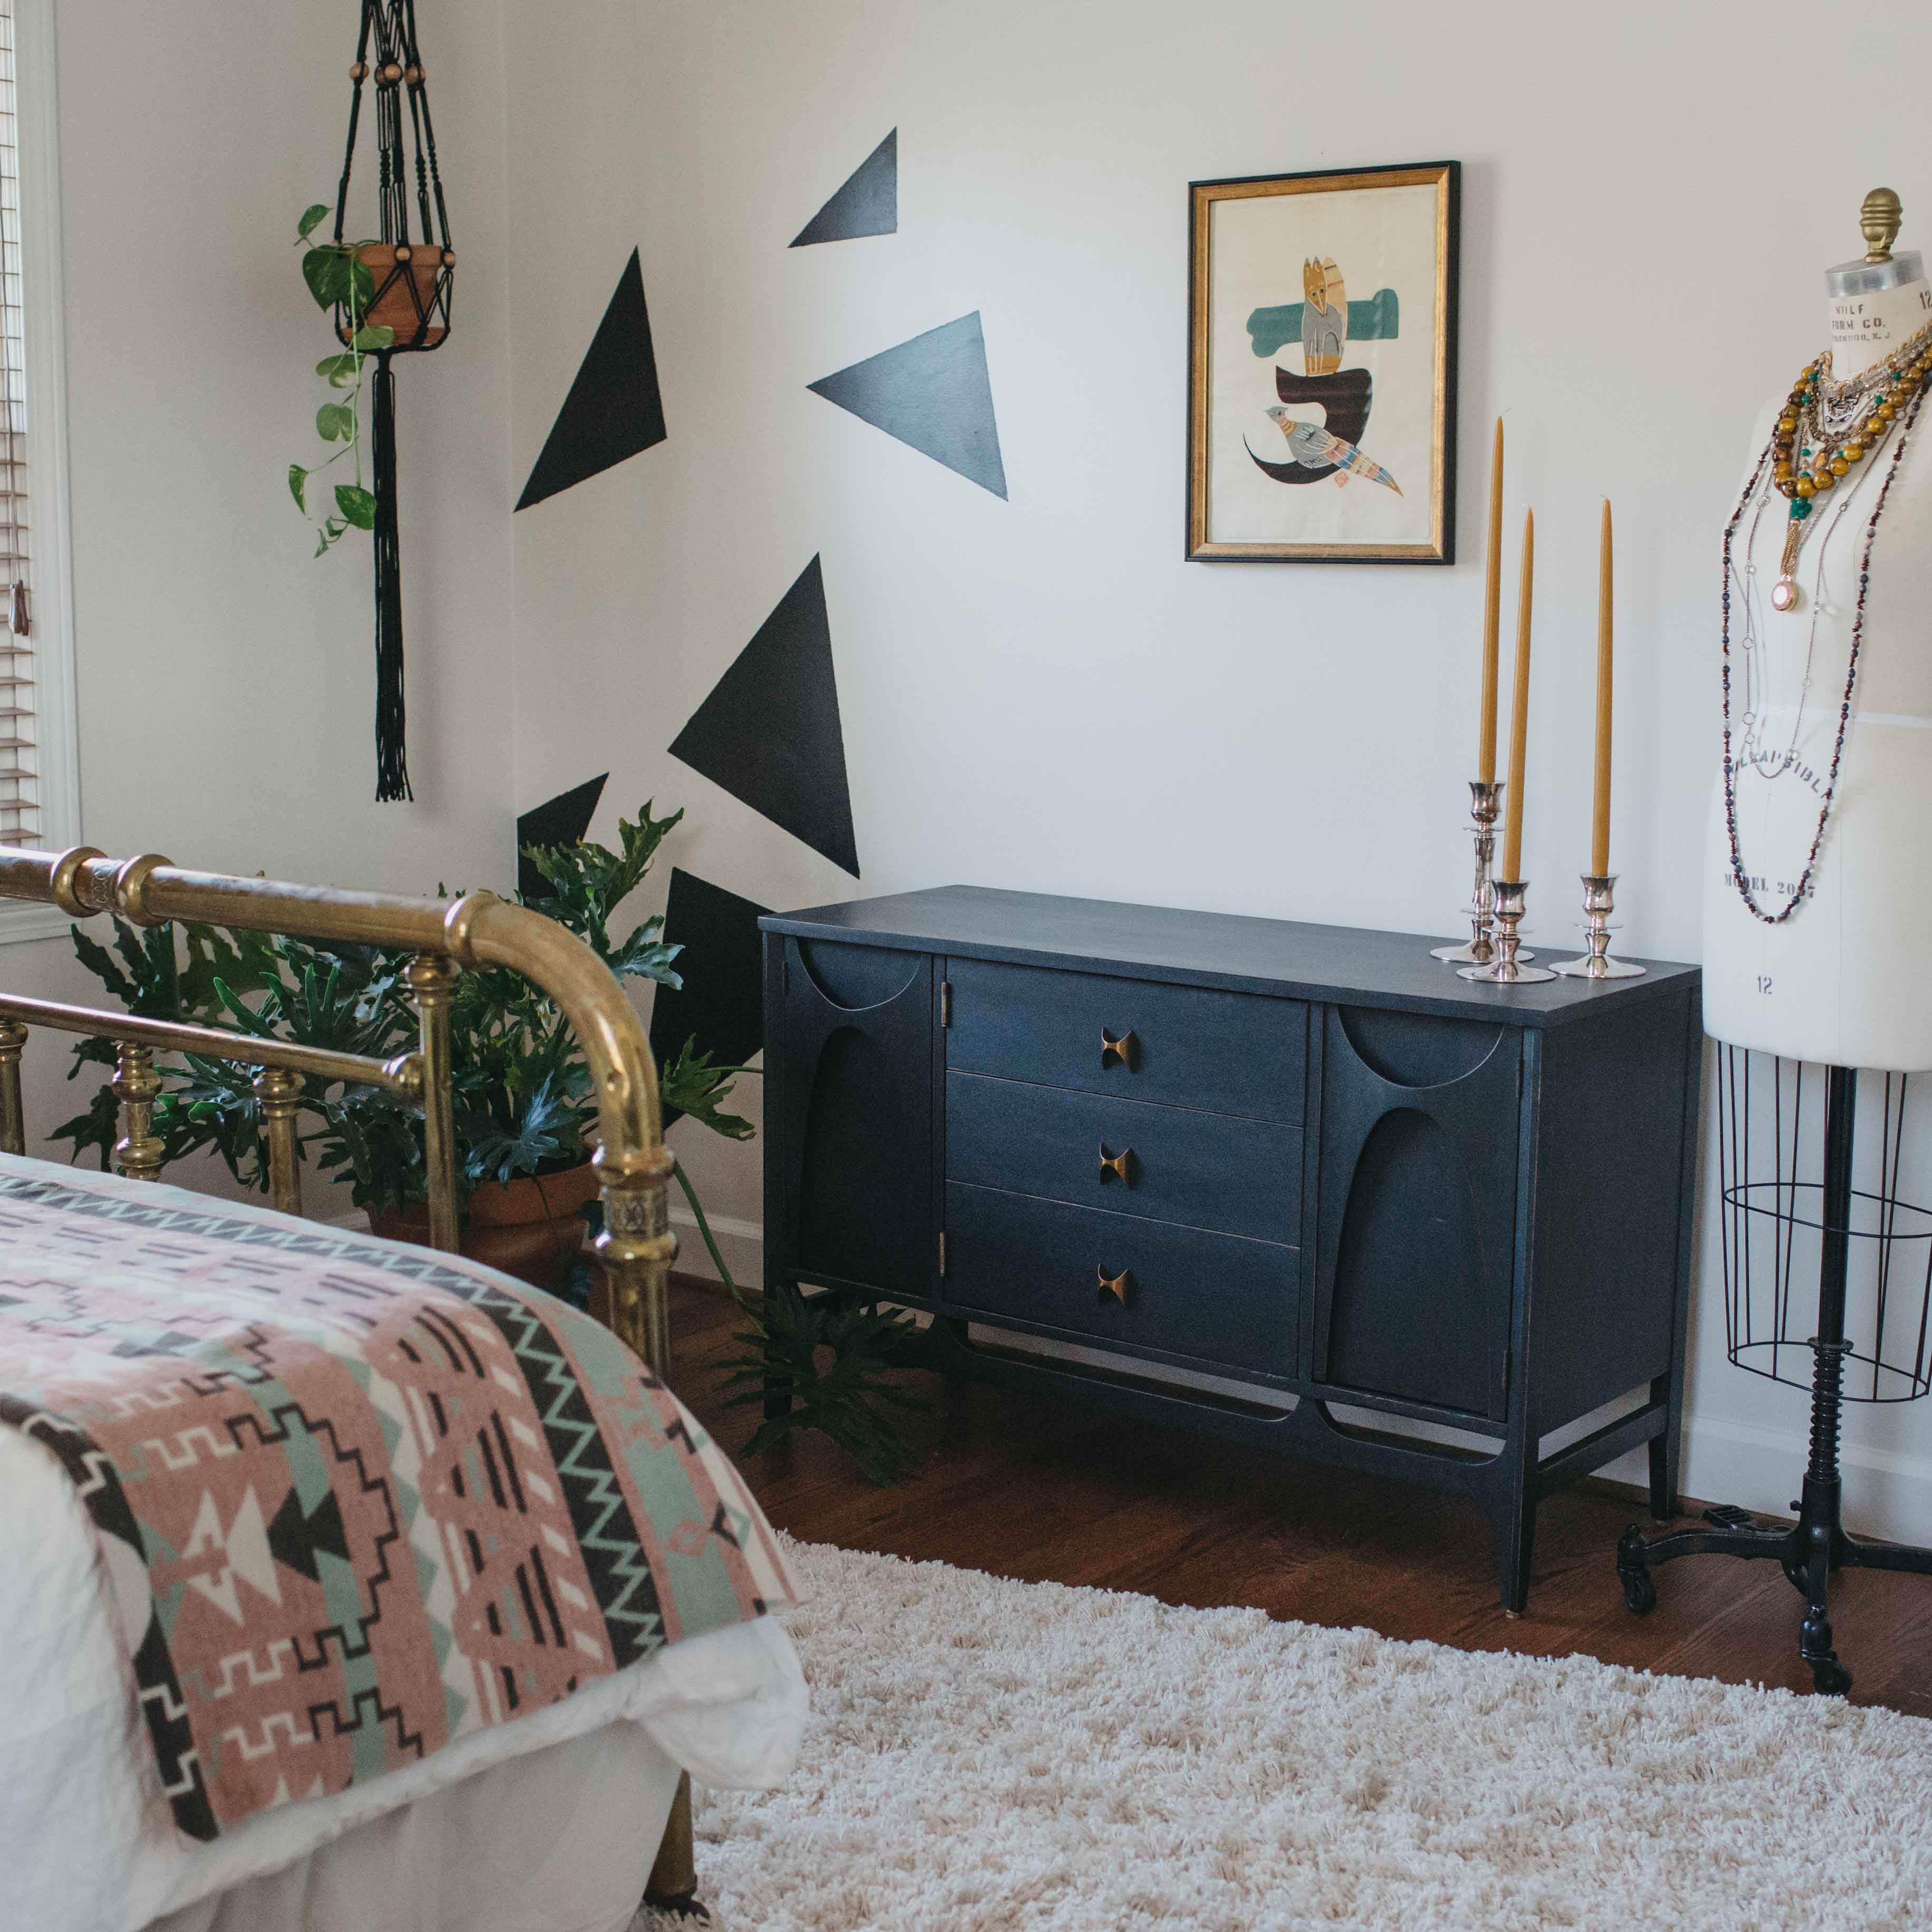 A Vintage Filled Home in Greenville, SC Designed To Feel Like a Retreat on Design*Sponge